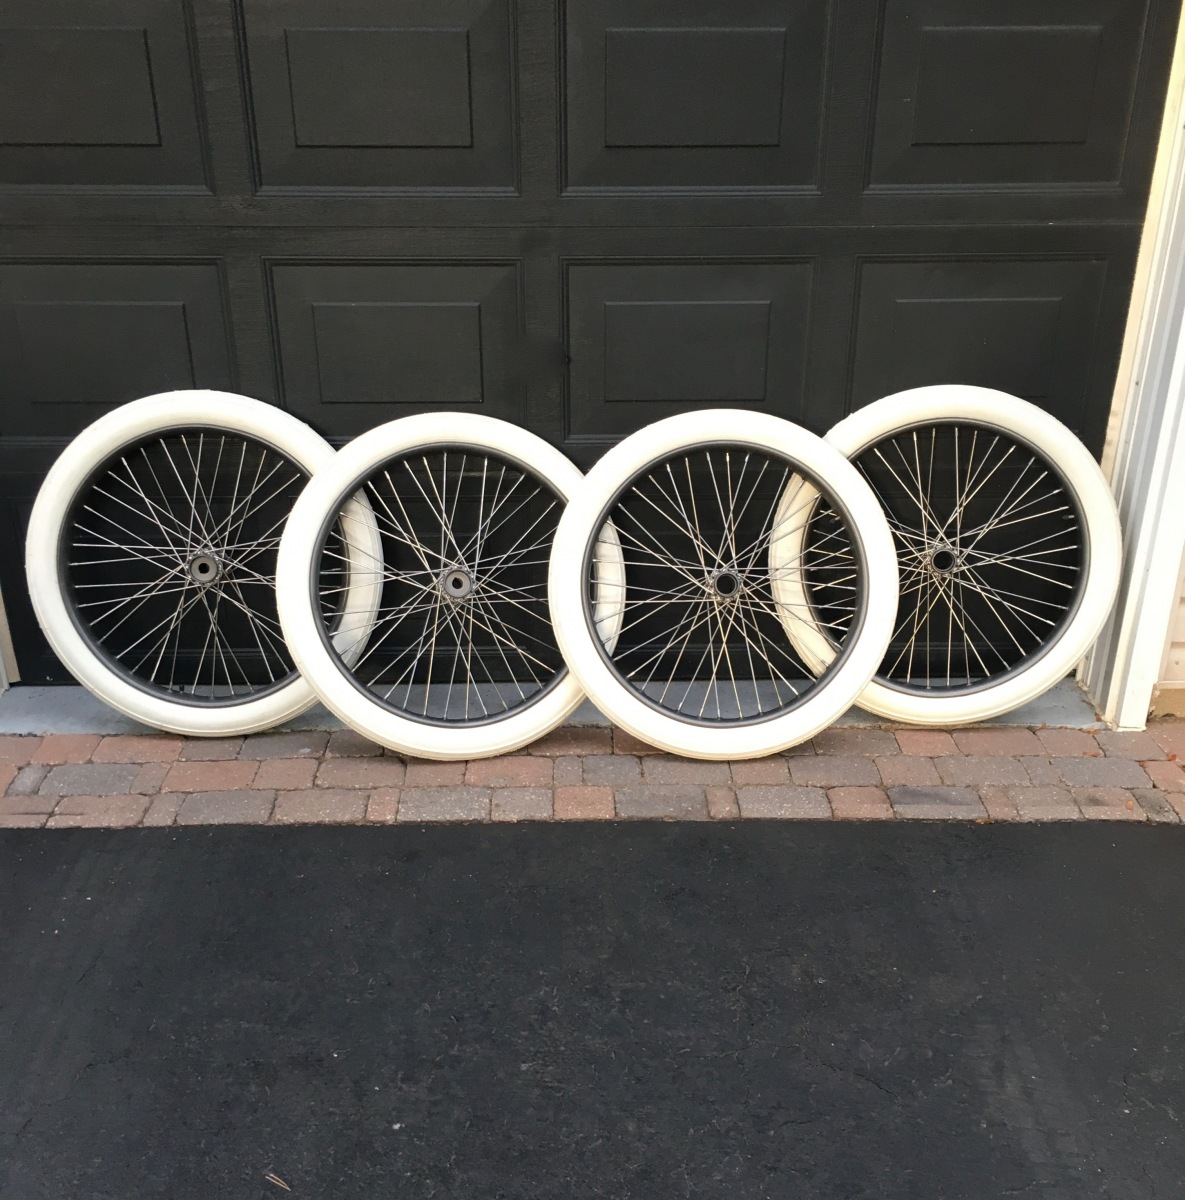 Completed Four Wheels - New Spokes / Period Tires